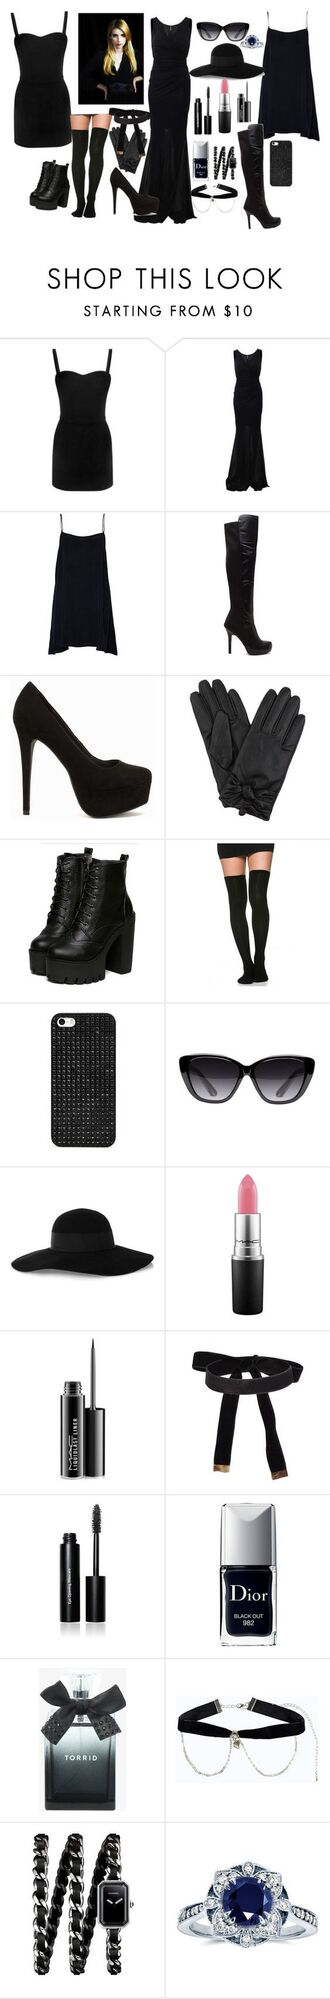 shoes american horror story horror style nu goth madison montgomery american horror coven